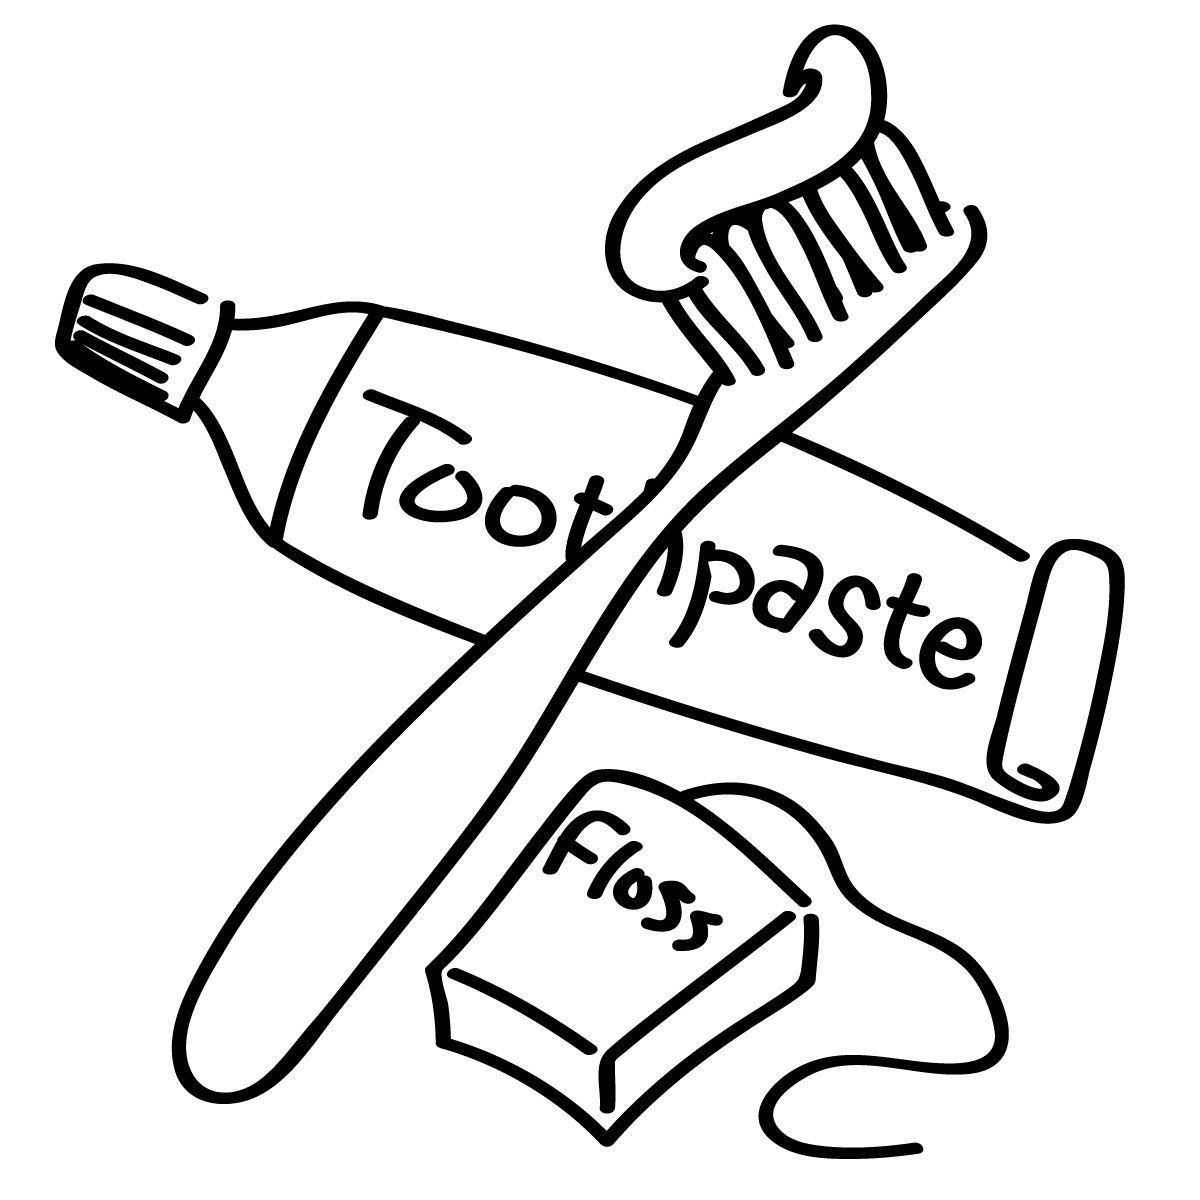 Awesome Toothbrush Clipart Coloring Page-Awesome Toothbrush Clipart Coloring Page Pencil And In Color Picture For  Dental Health Inspiration Books Popular FILES 7256 For Toothbrush Coloring  Page-1